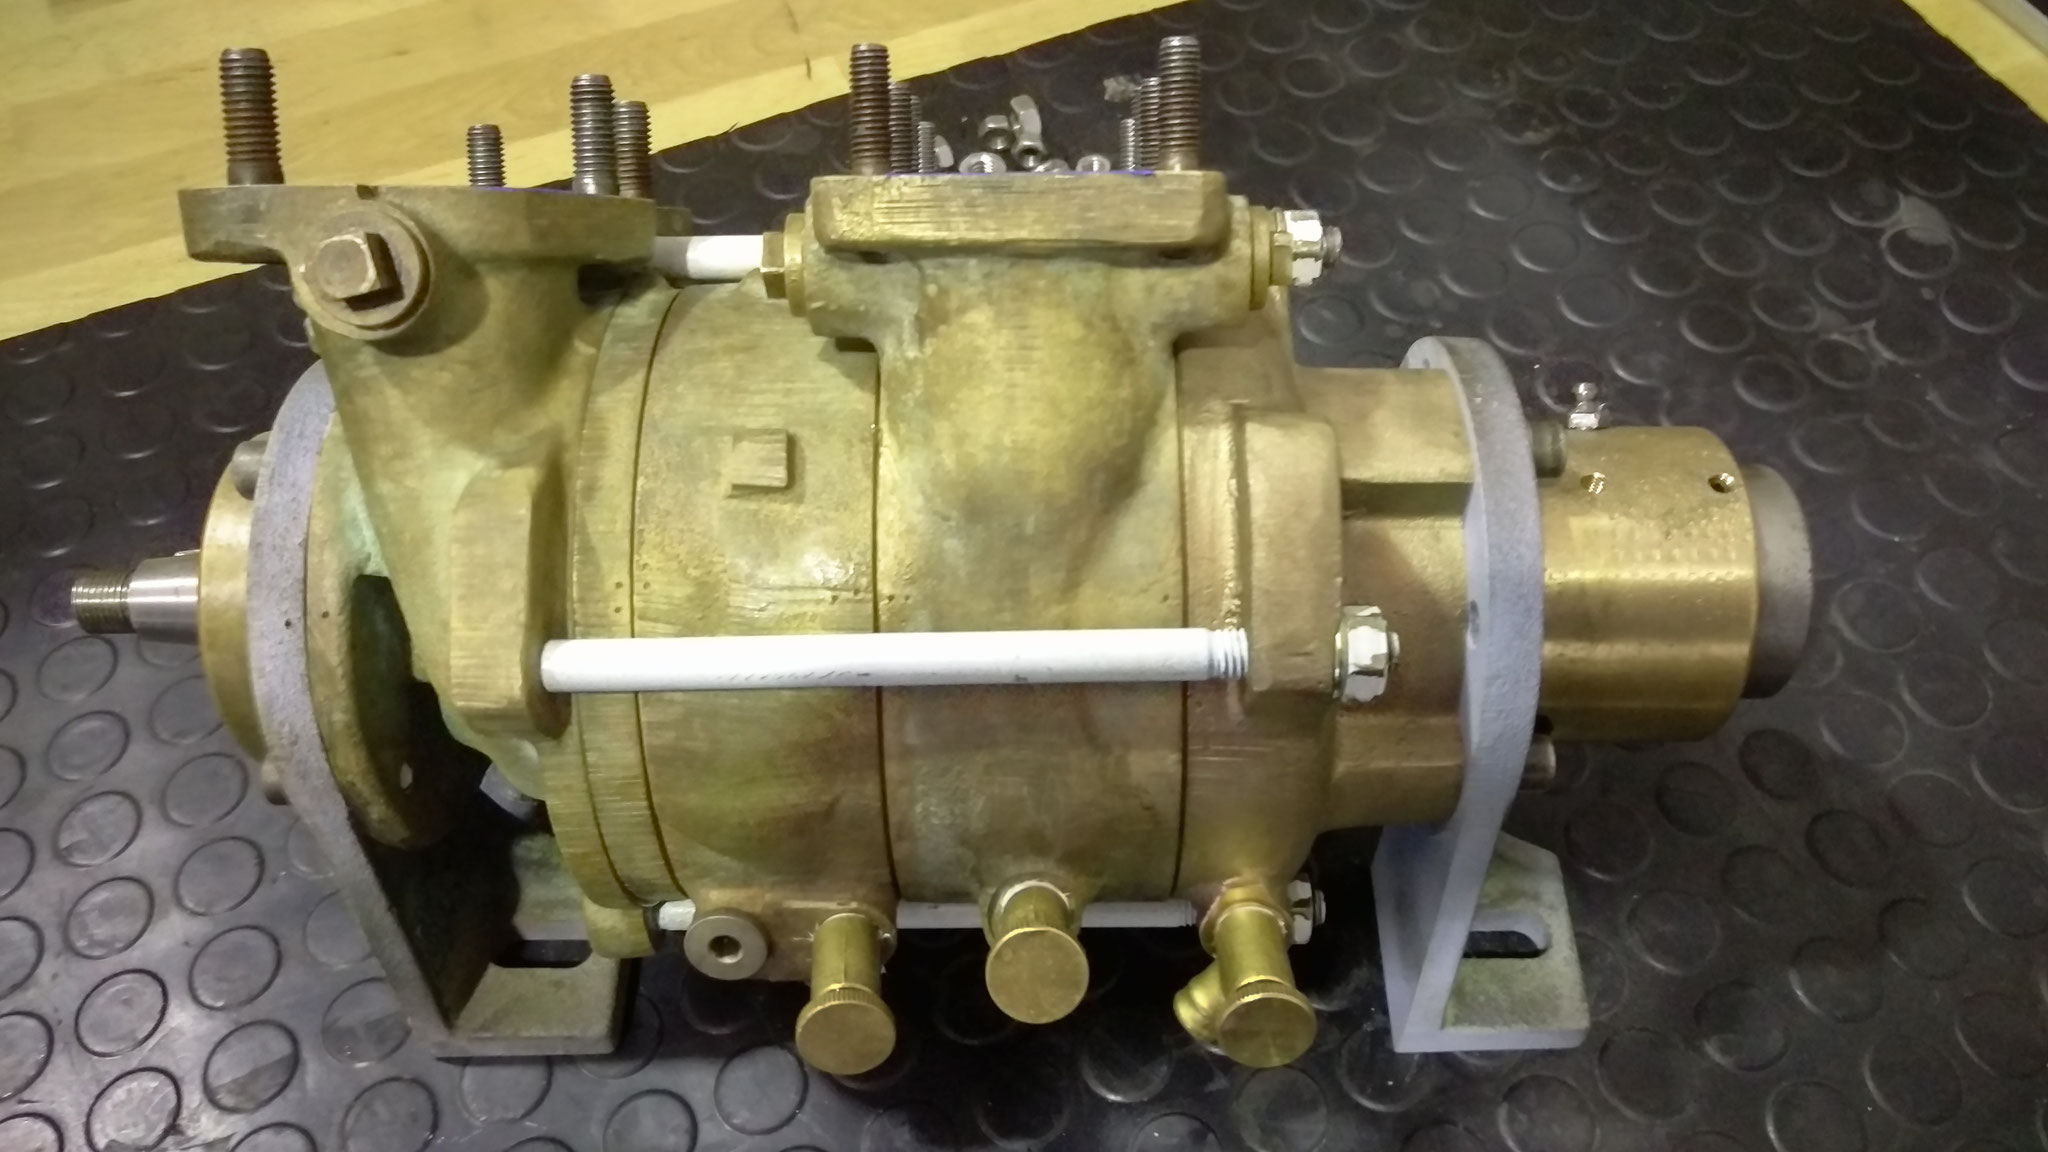 Overhaul of coolant pump